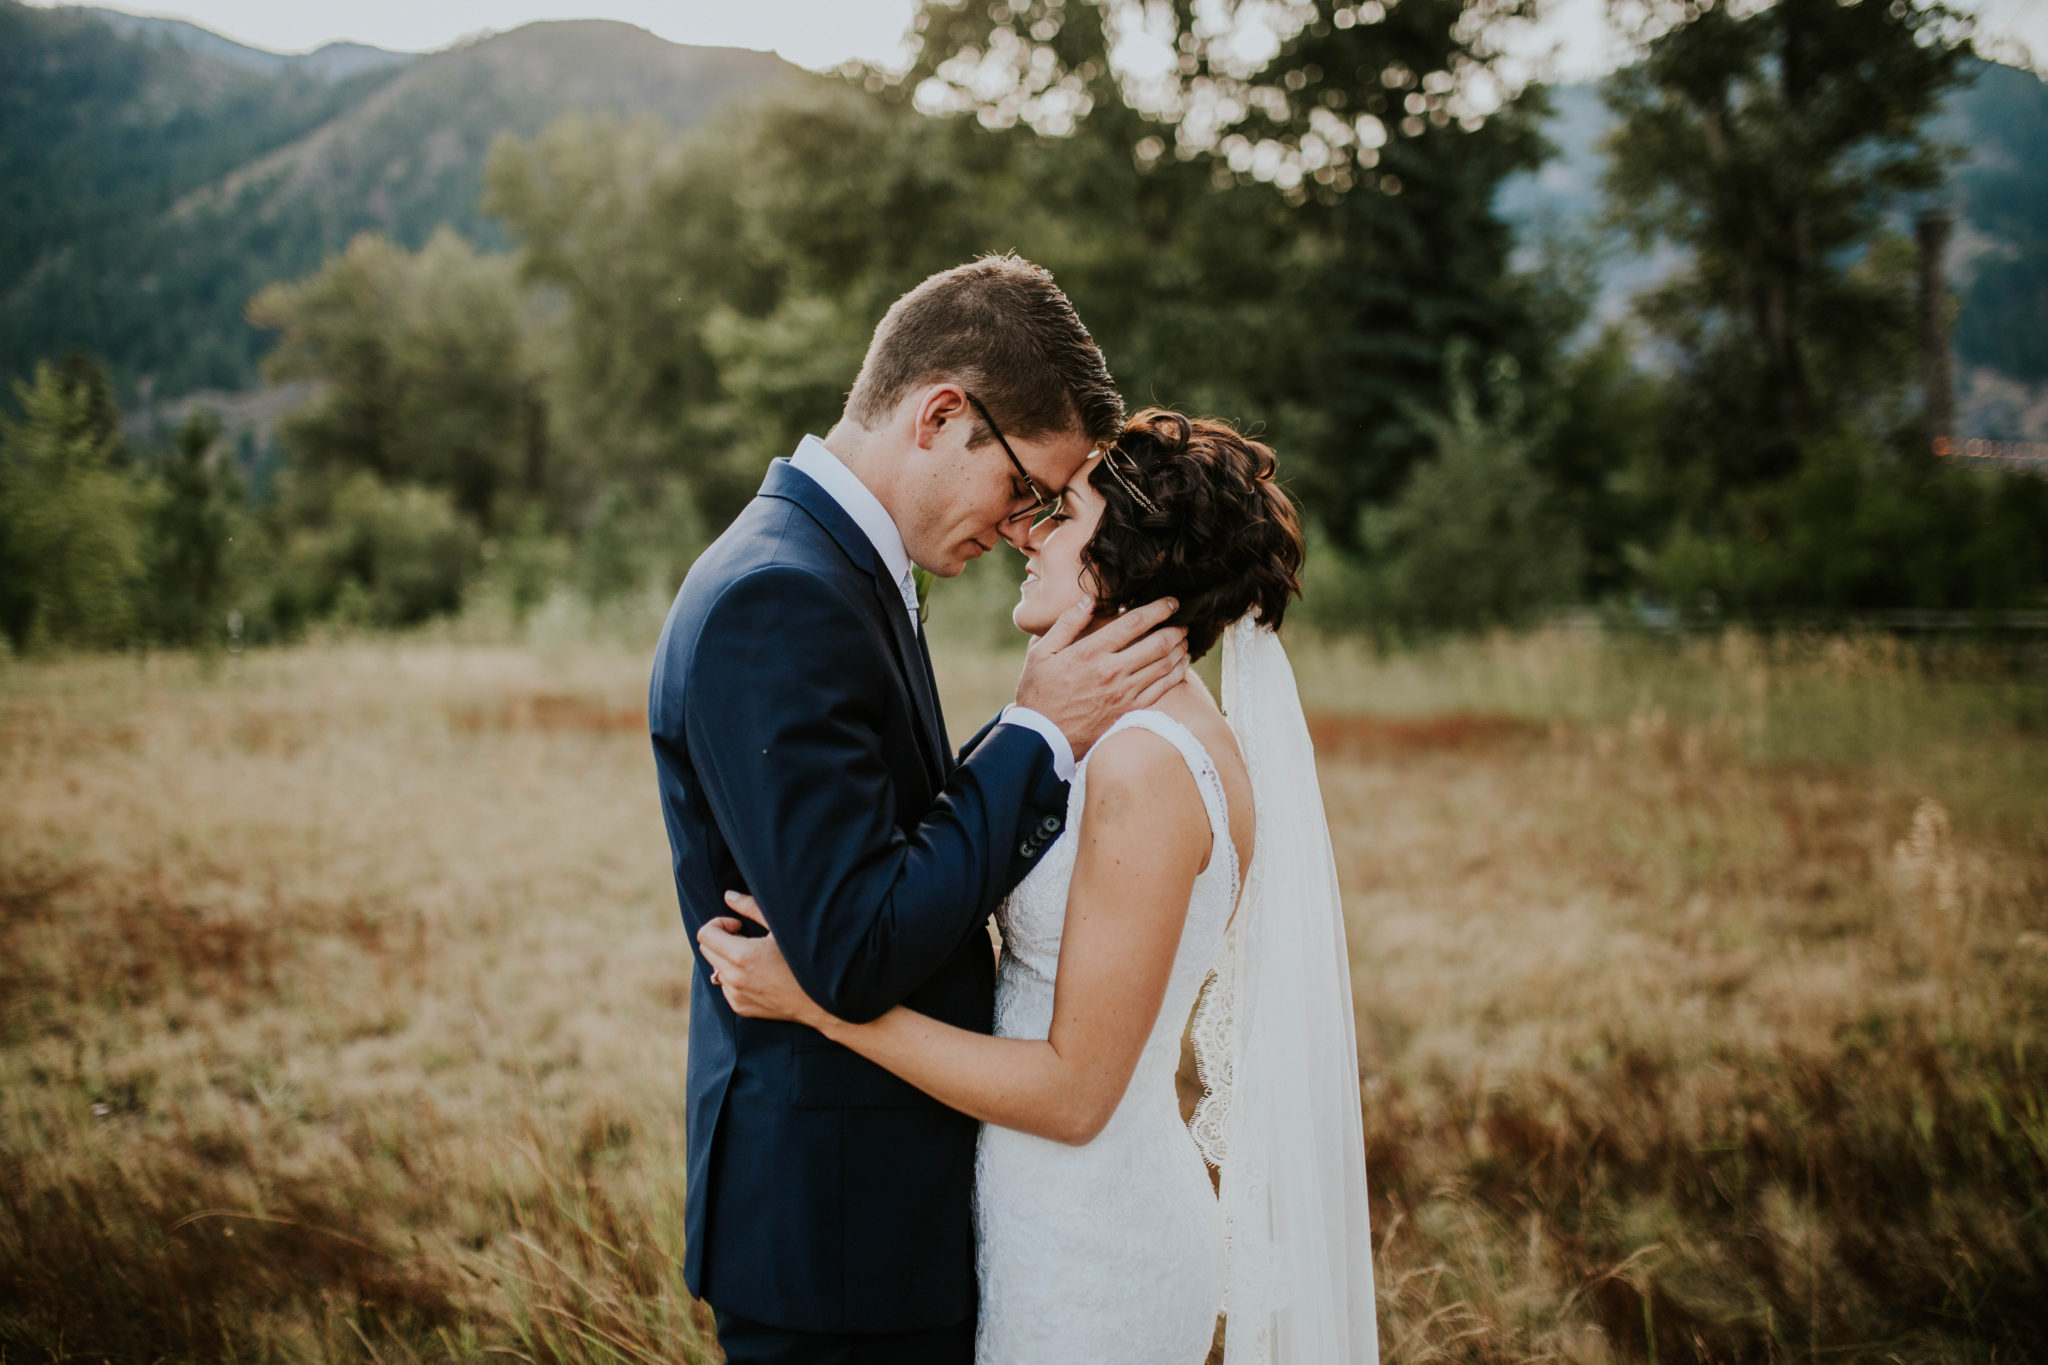 rachel-and-patrick-seattle-washington-wedding-photographer-553